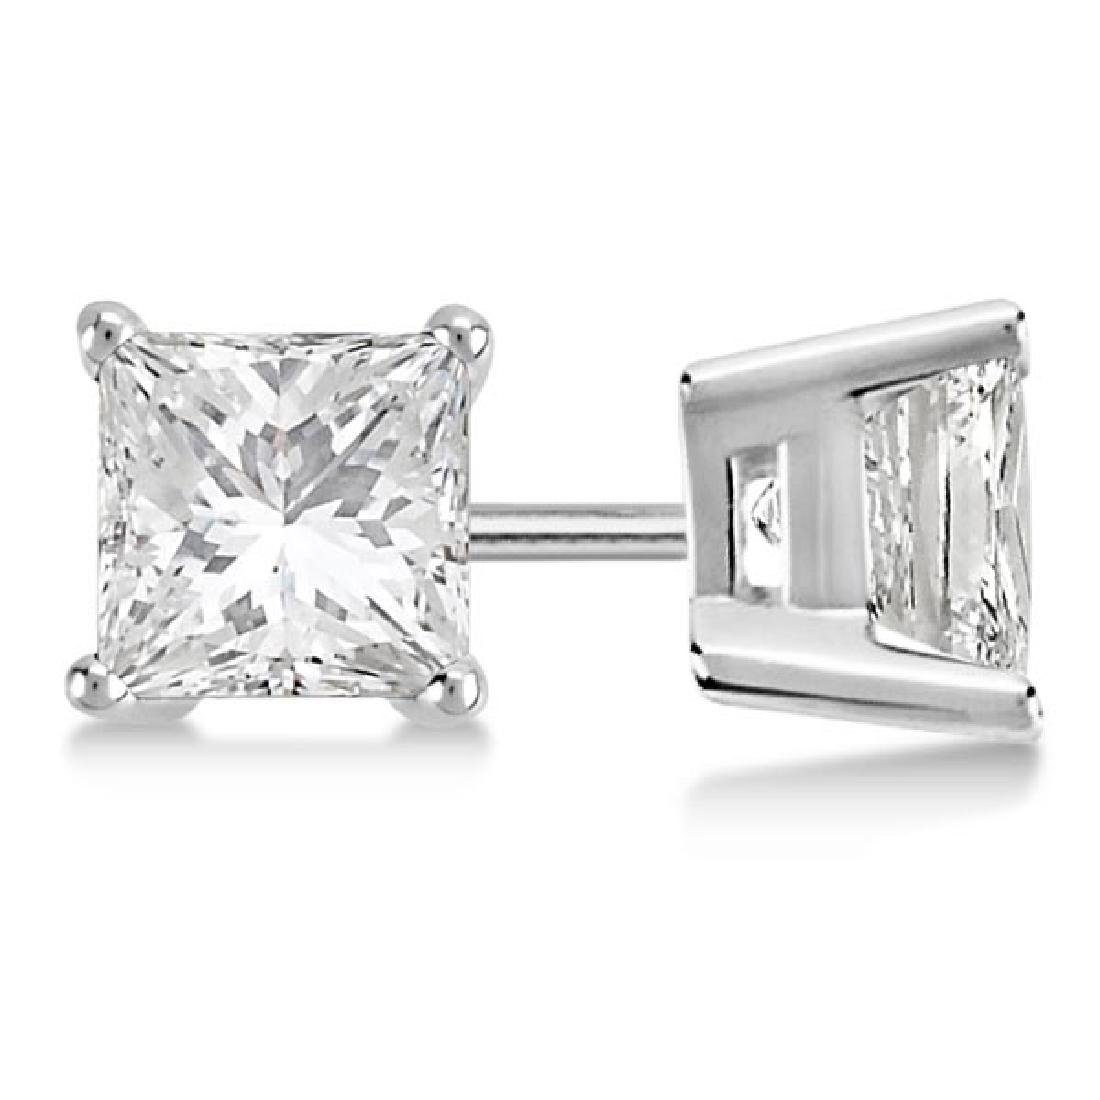 Certified 1.04 CTW Princess Diamond Stud Earrings E/SI1